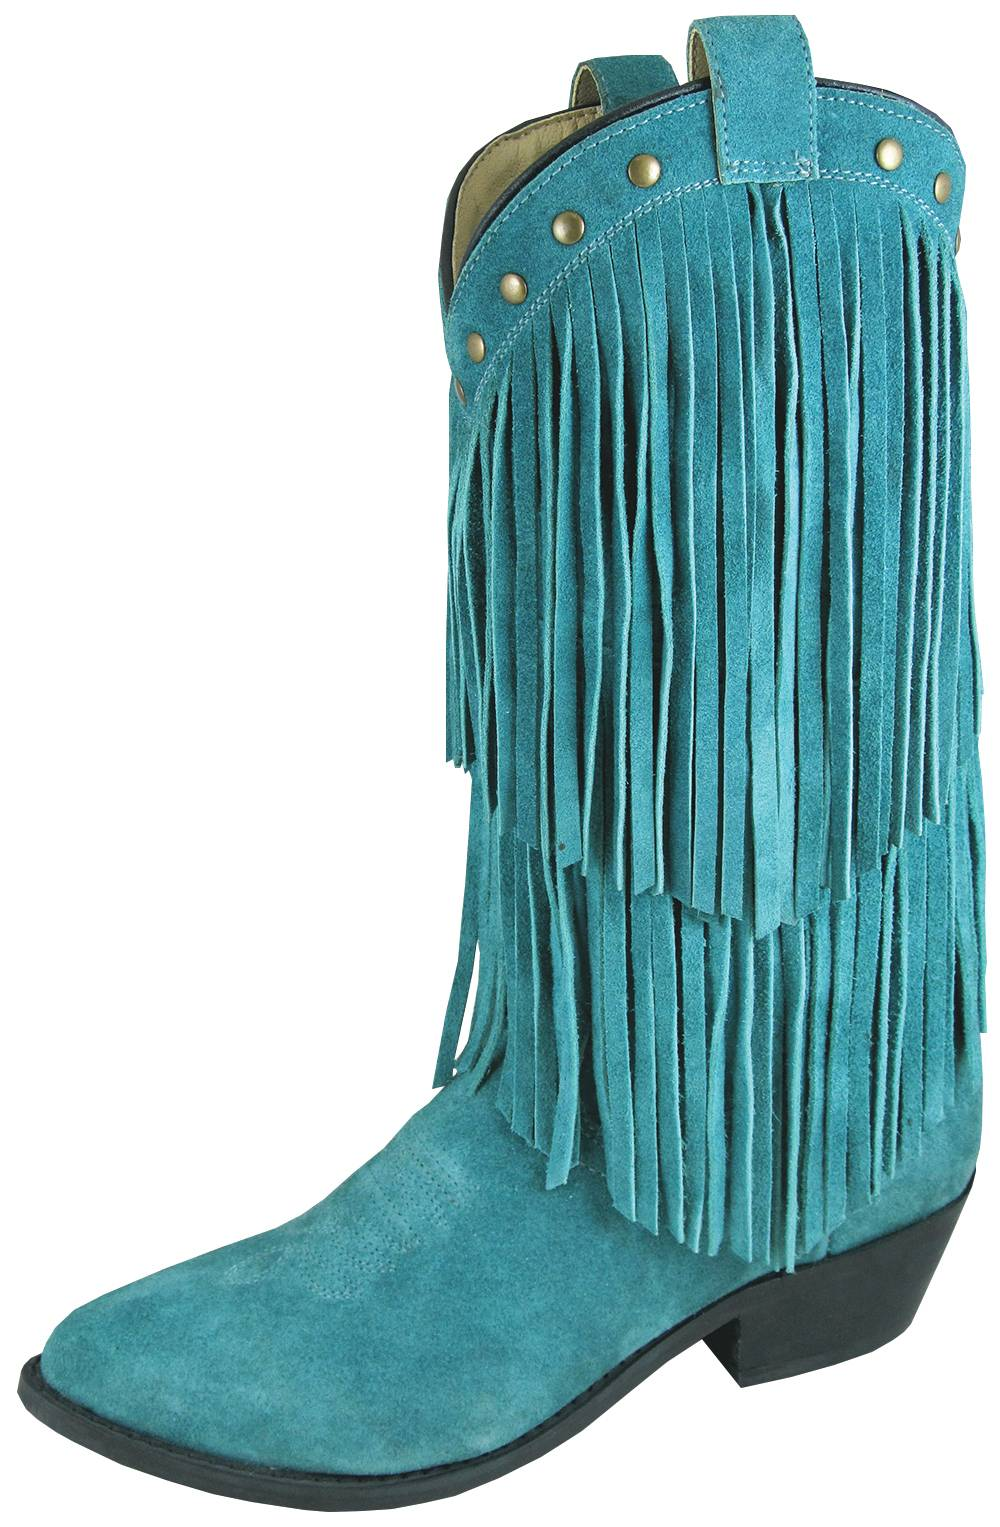 Smoky Mountain Women's Wisteria Double Fringe Leather Boots -Teal